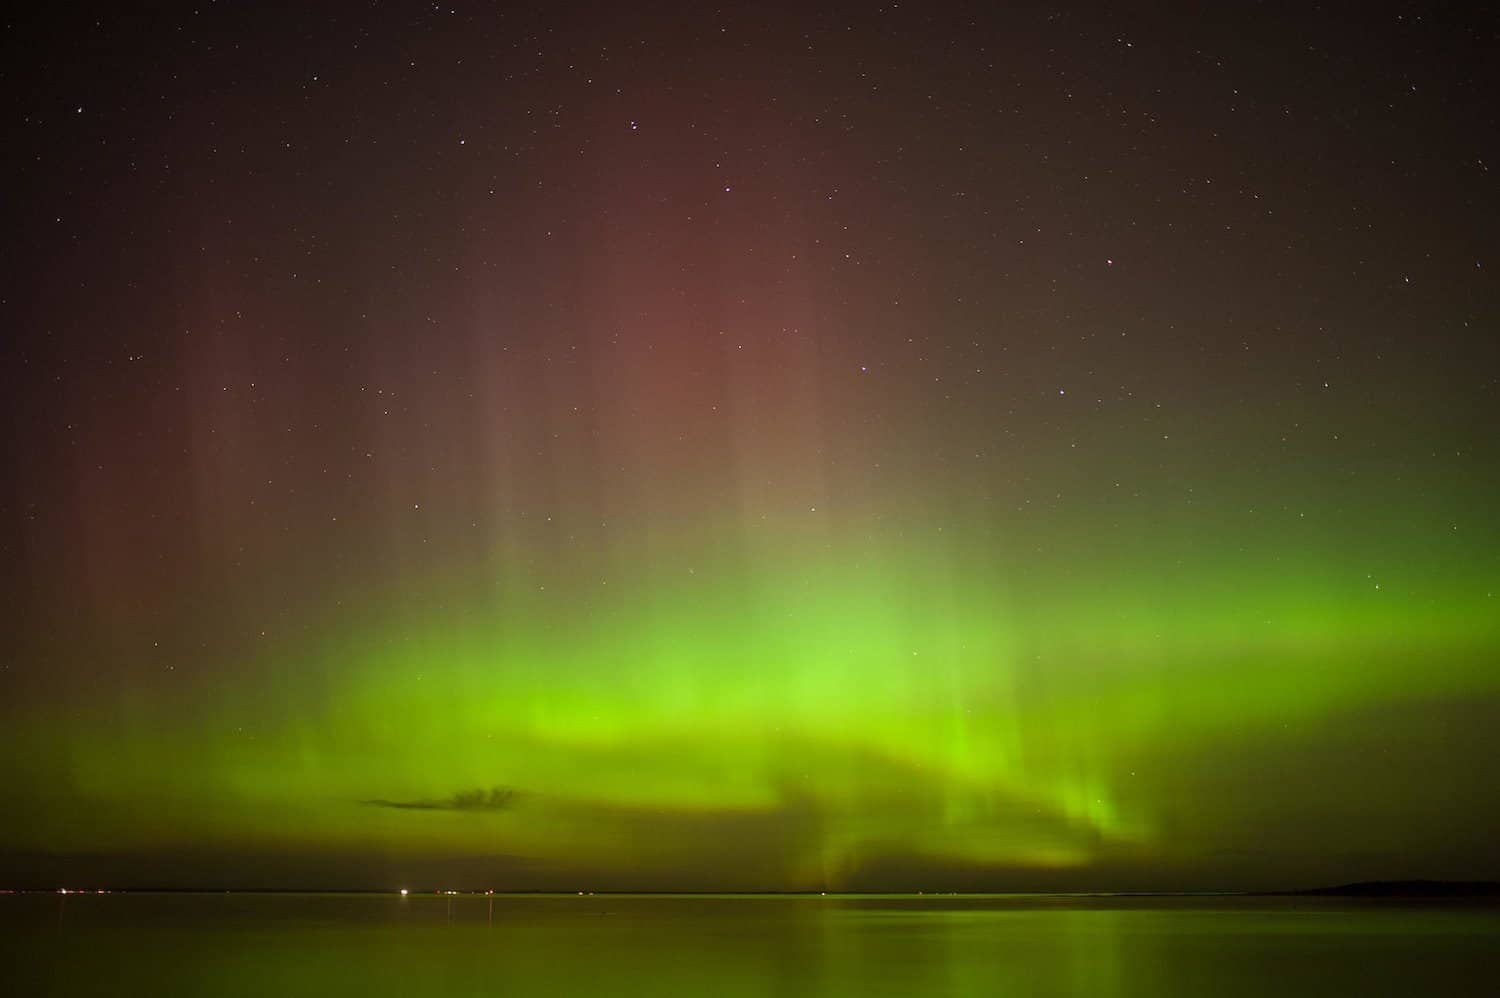 Northern Lights in Canada - Quebec - Simon Hurens via Flickr